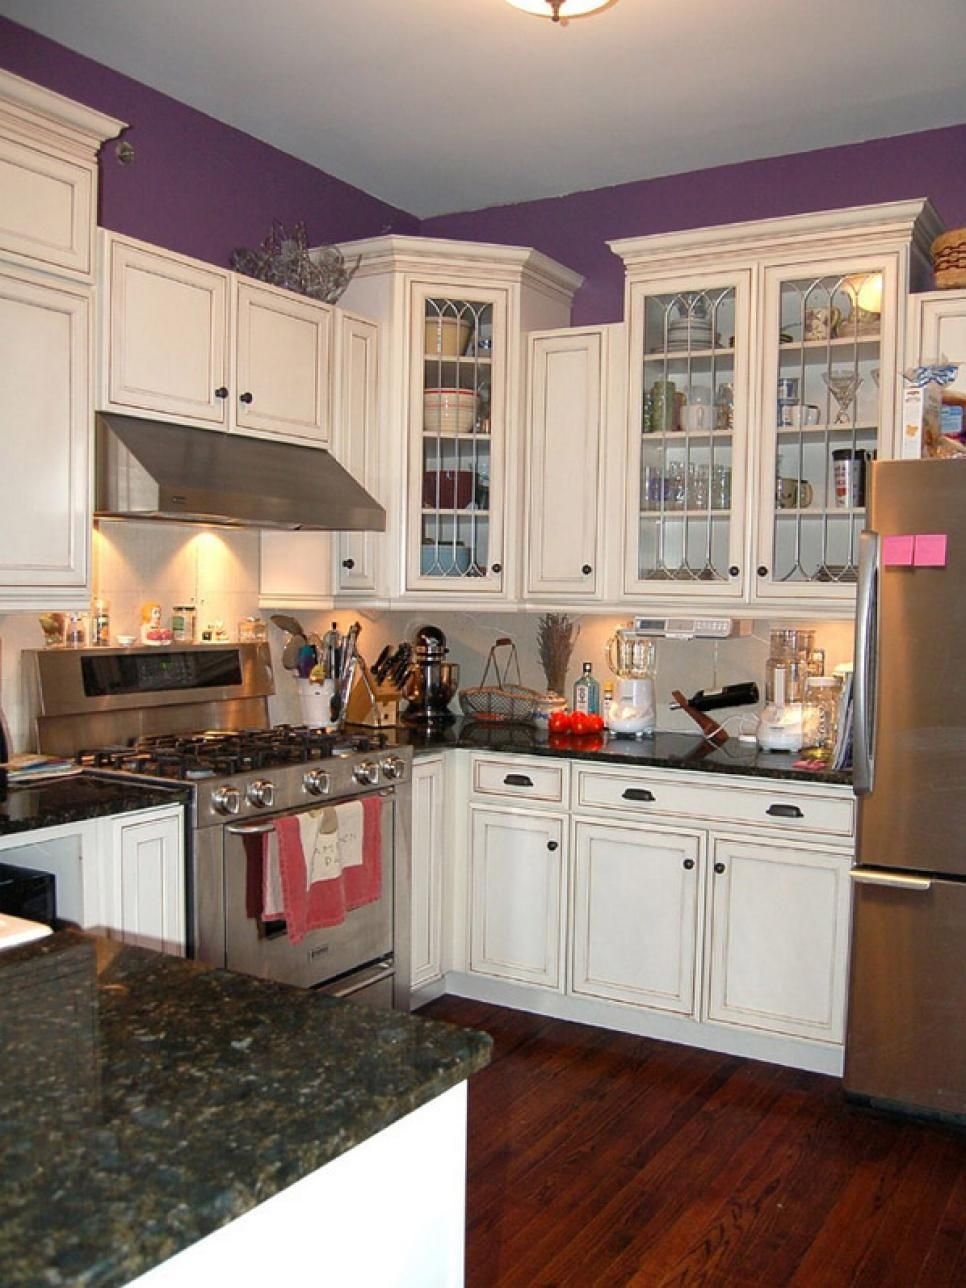 Pictures Of Small Kitchen Design Ideas From Hgtv Remodel Layouts Layout